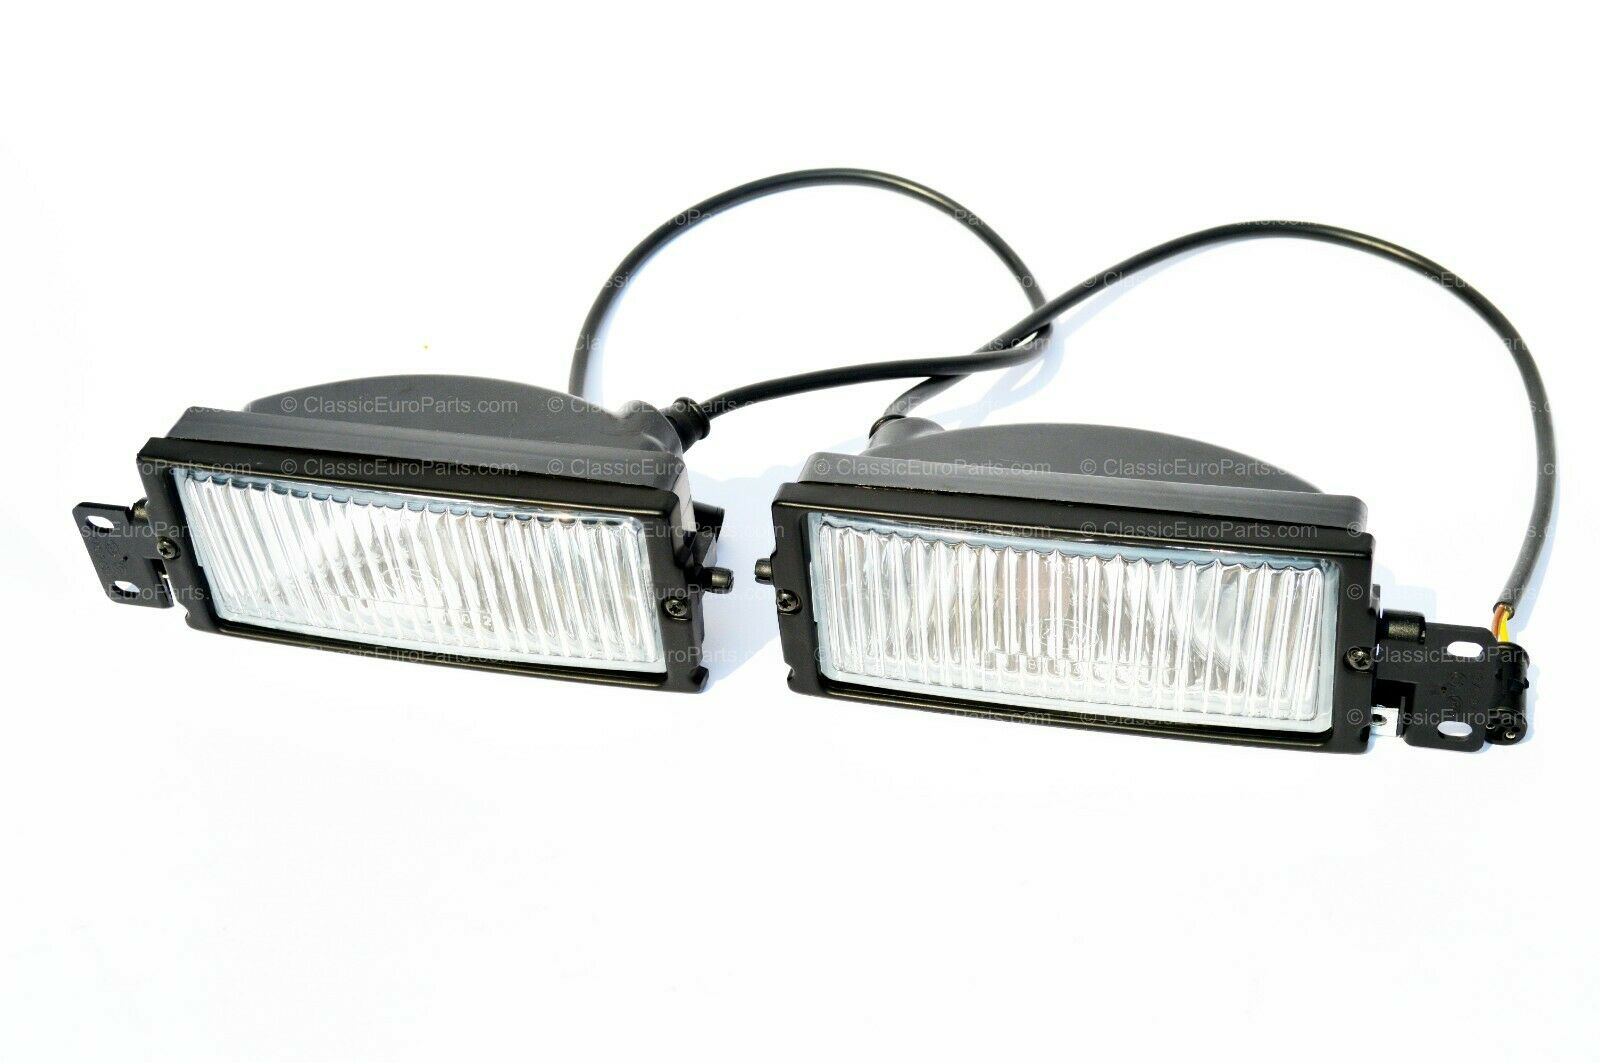 bmw e28 euro fog light  u0026 bracket set  u2013 classiceuroparts